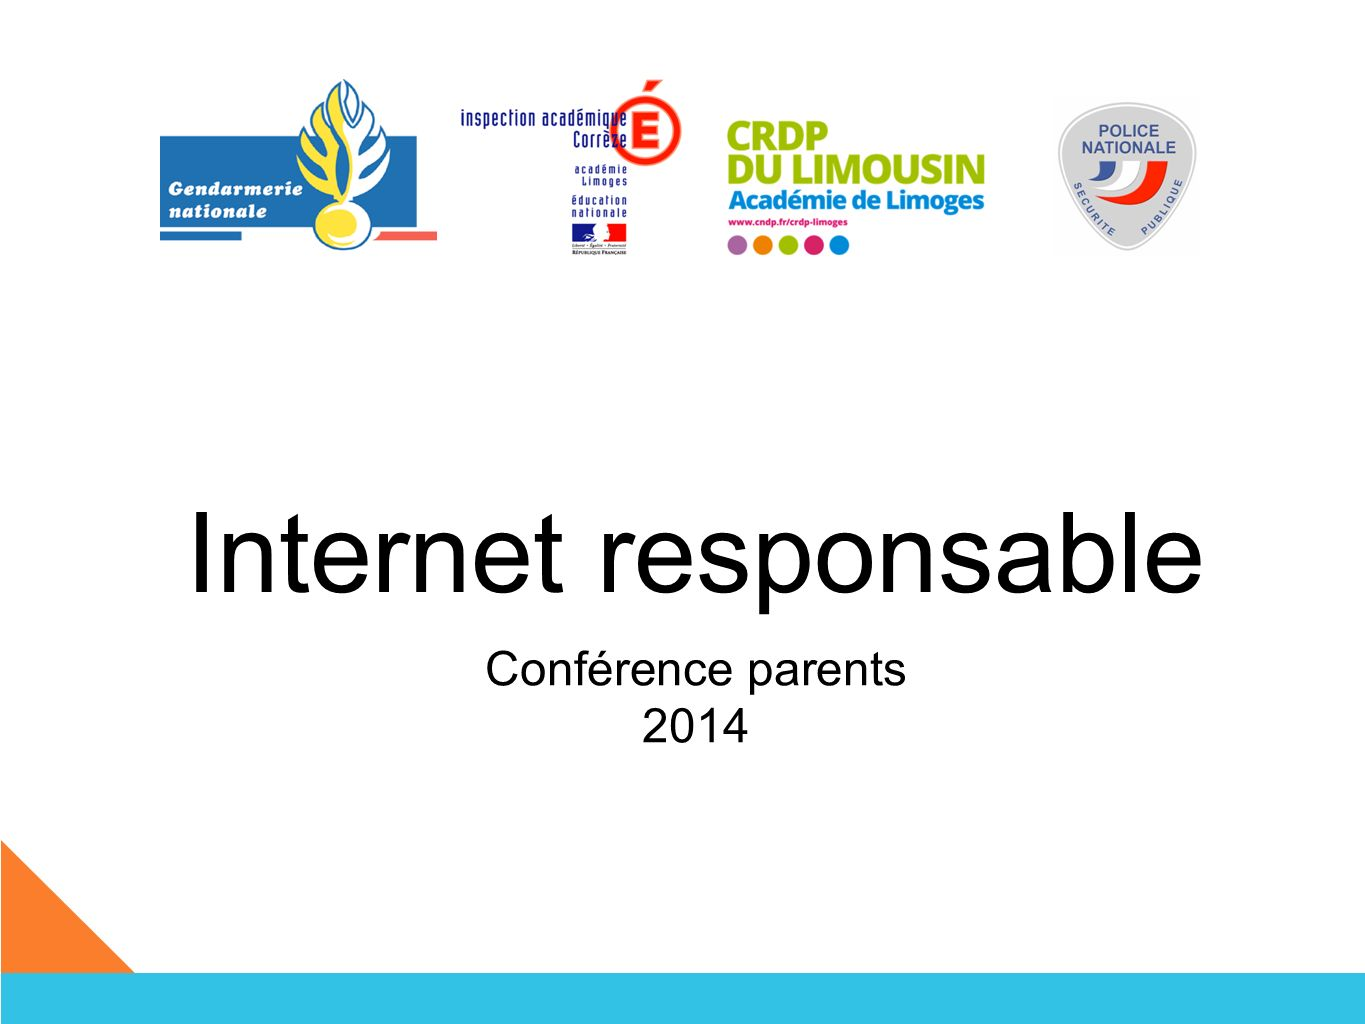 Internet responsable Conférence parents 2014